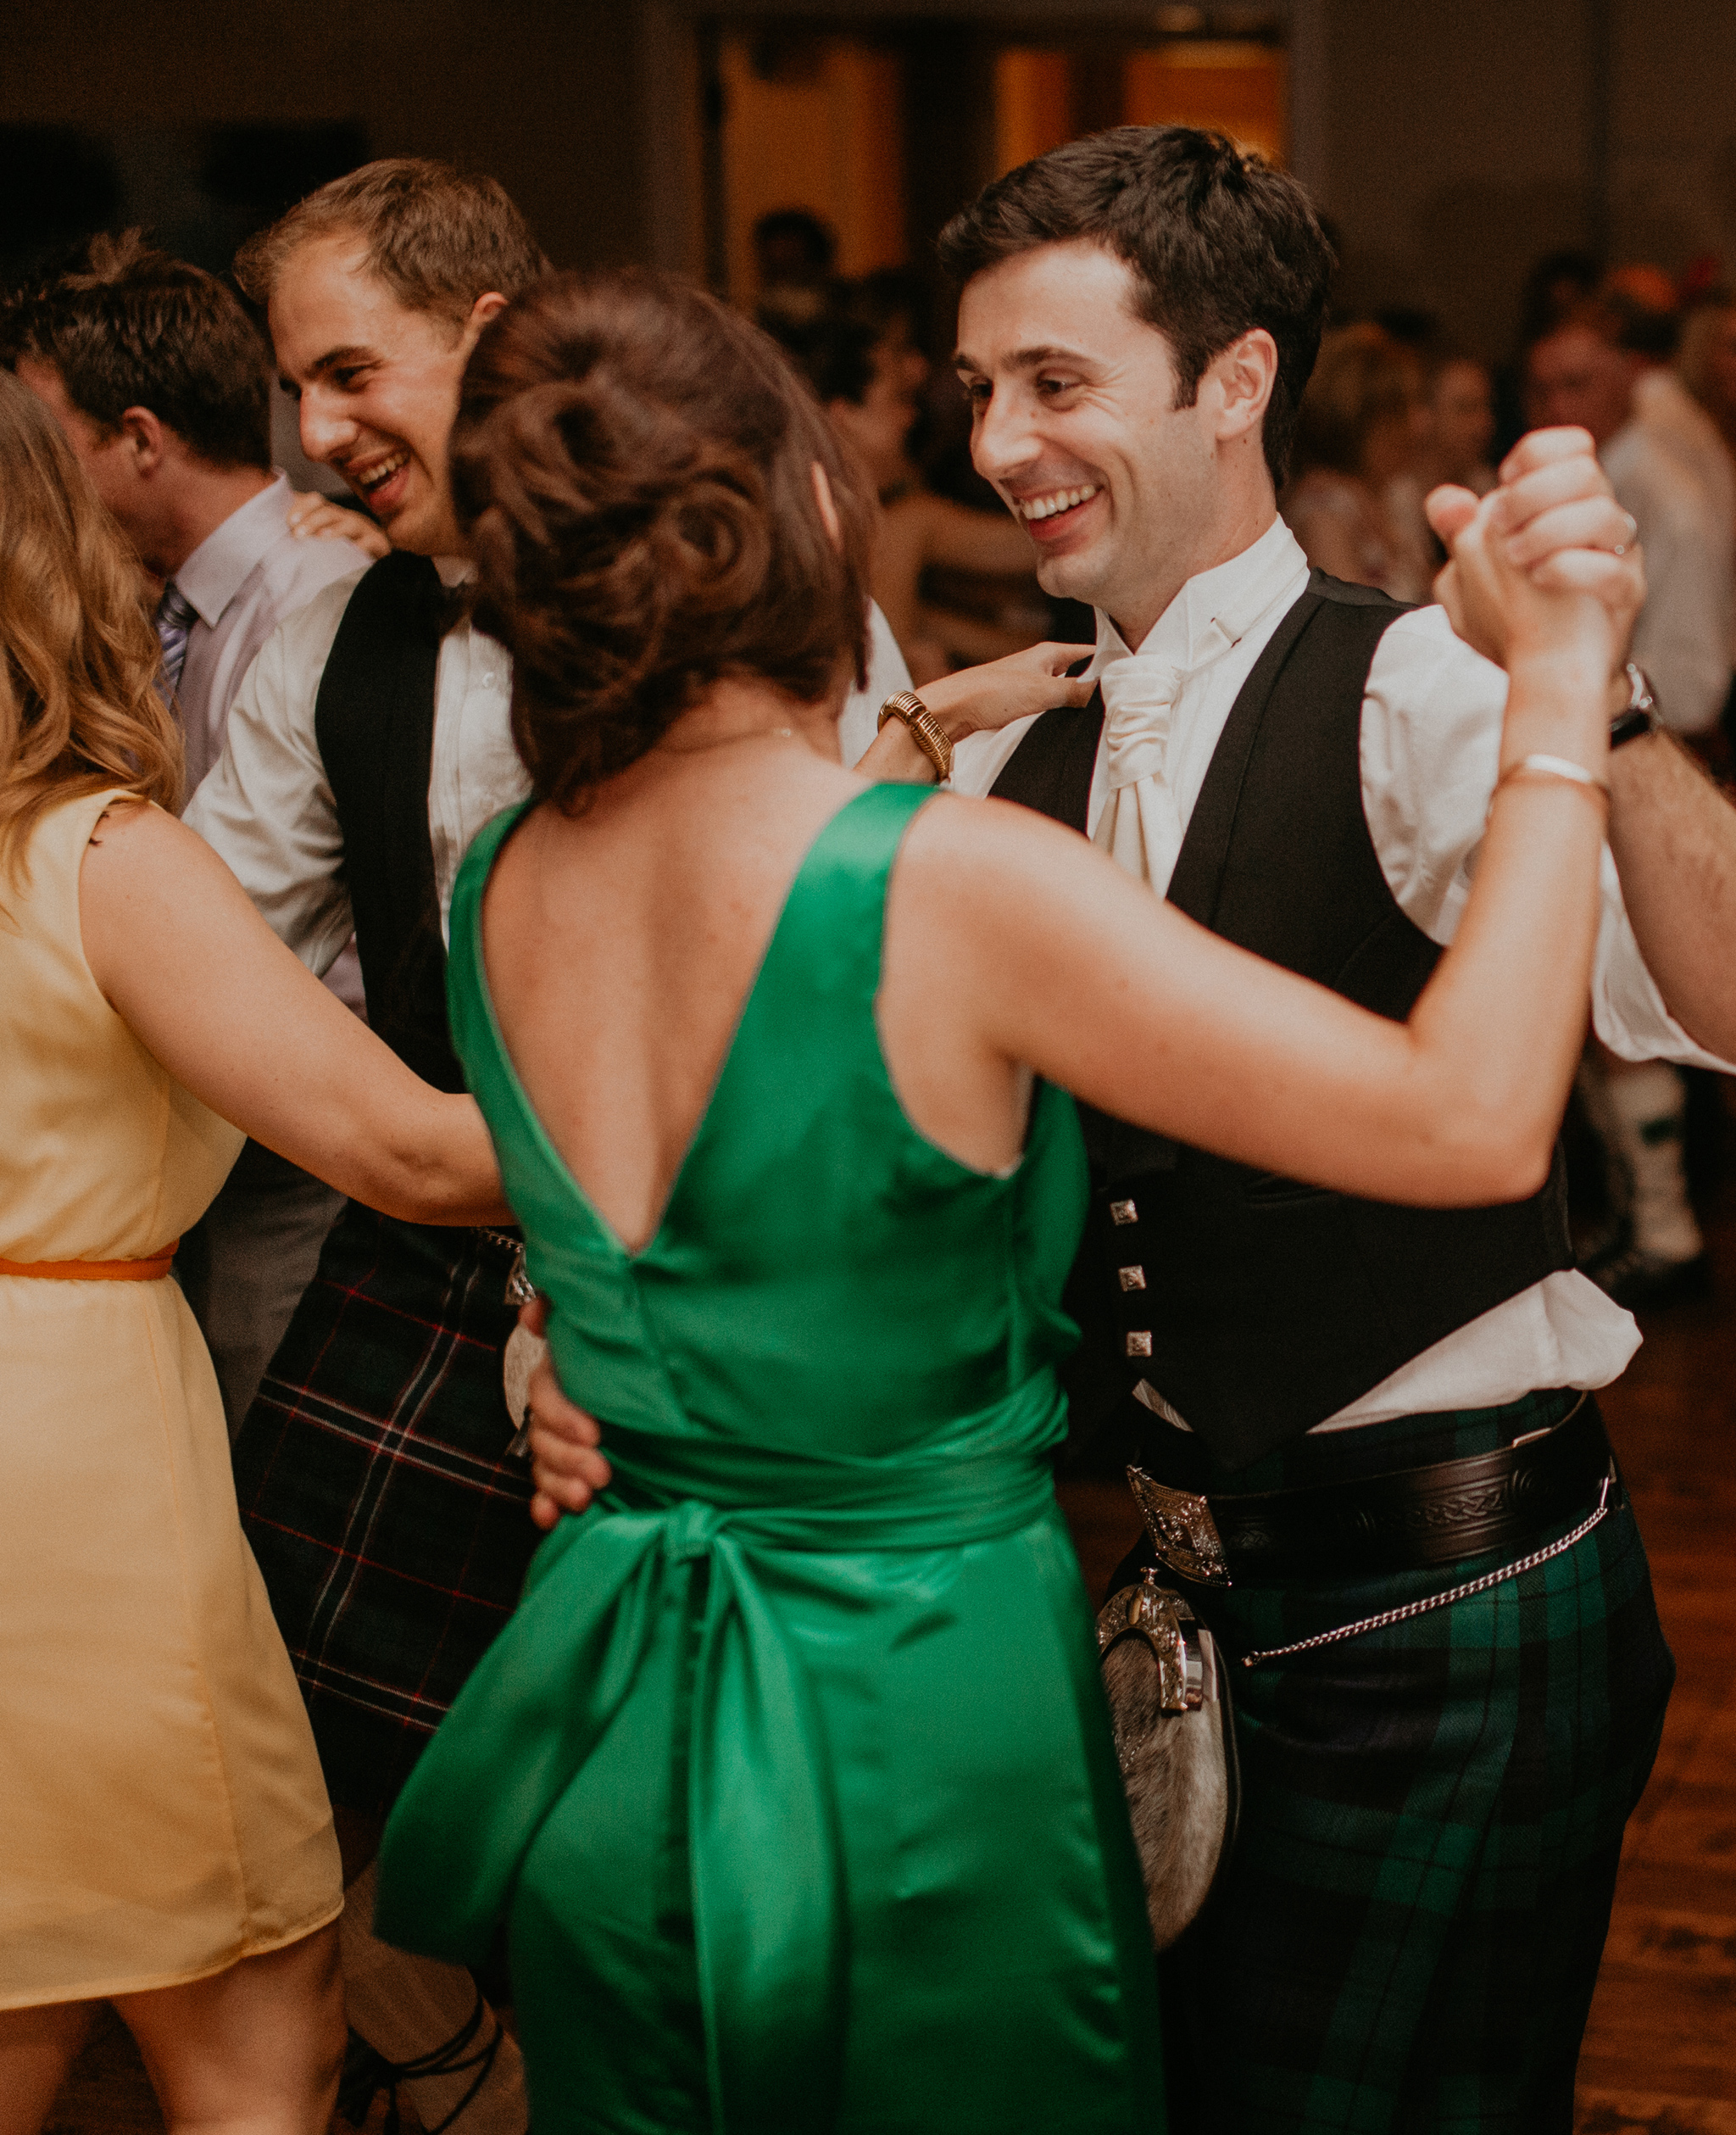 Groom dances with bridesmaid at wedding reception candid documentary photograph